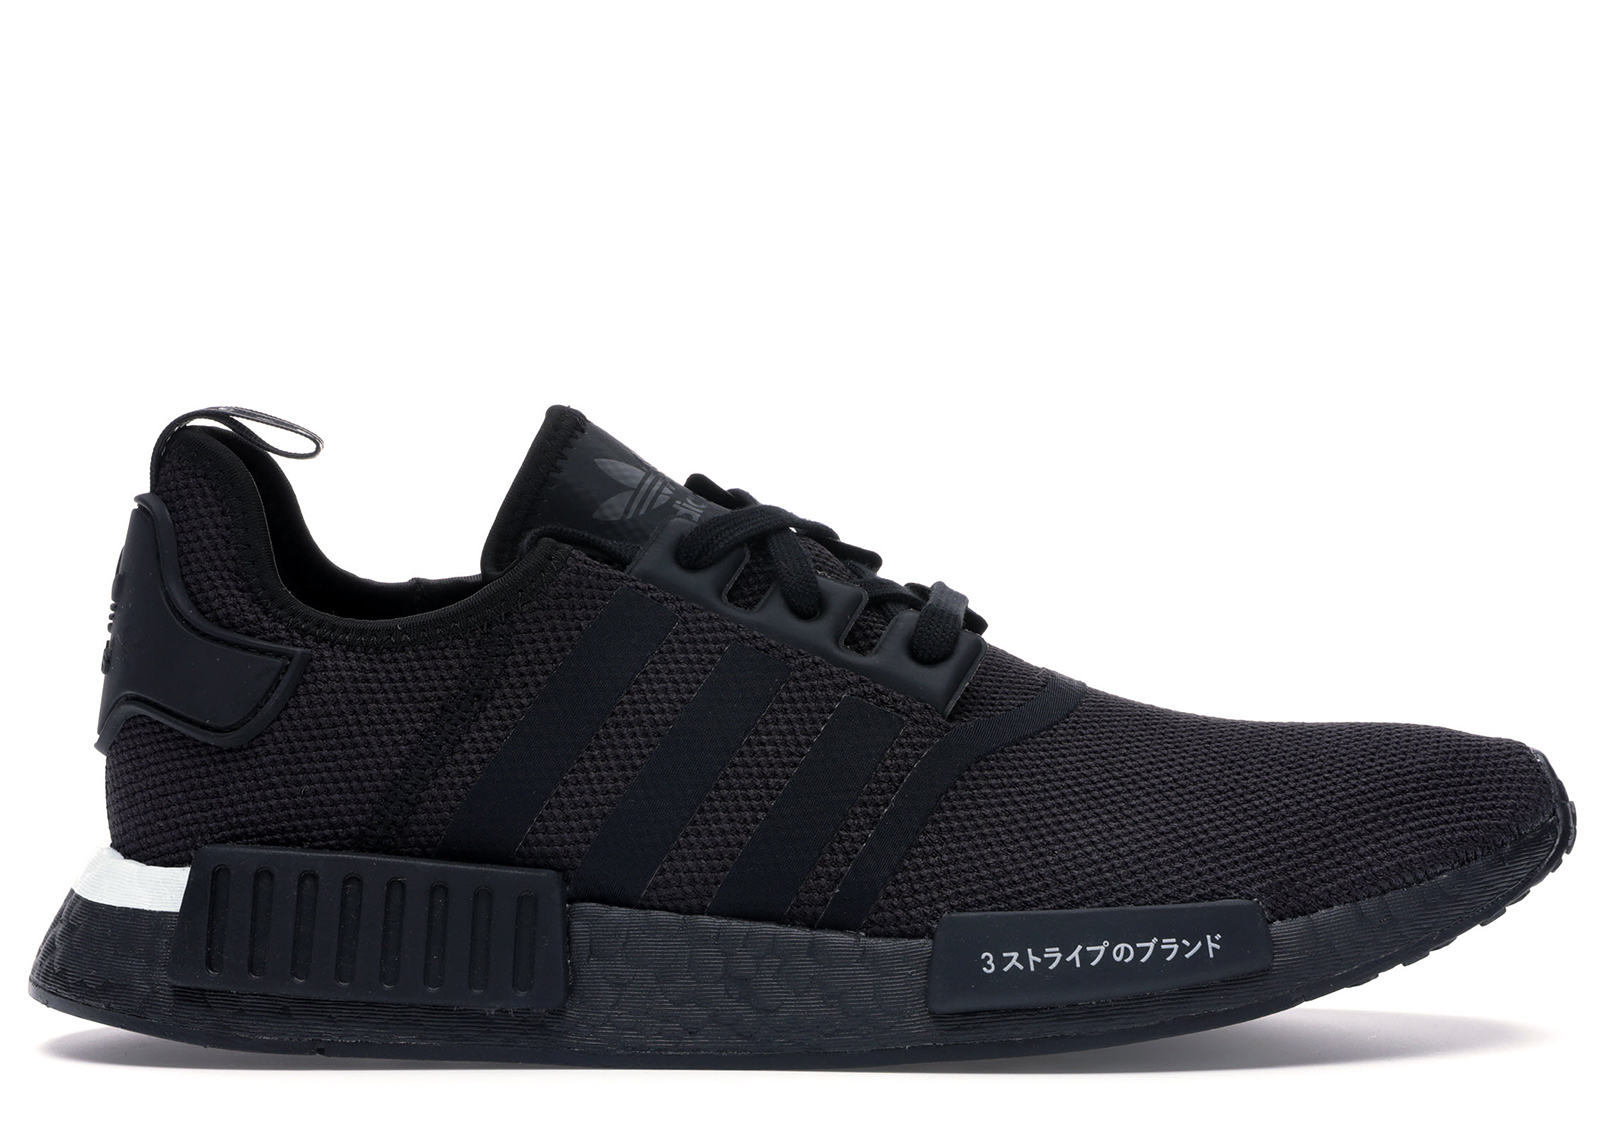 2adidas originals nmd xr1